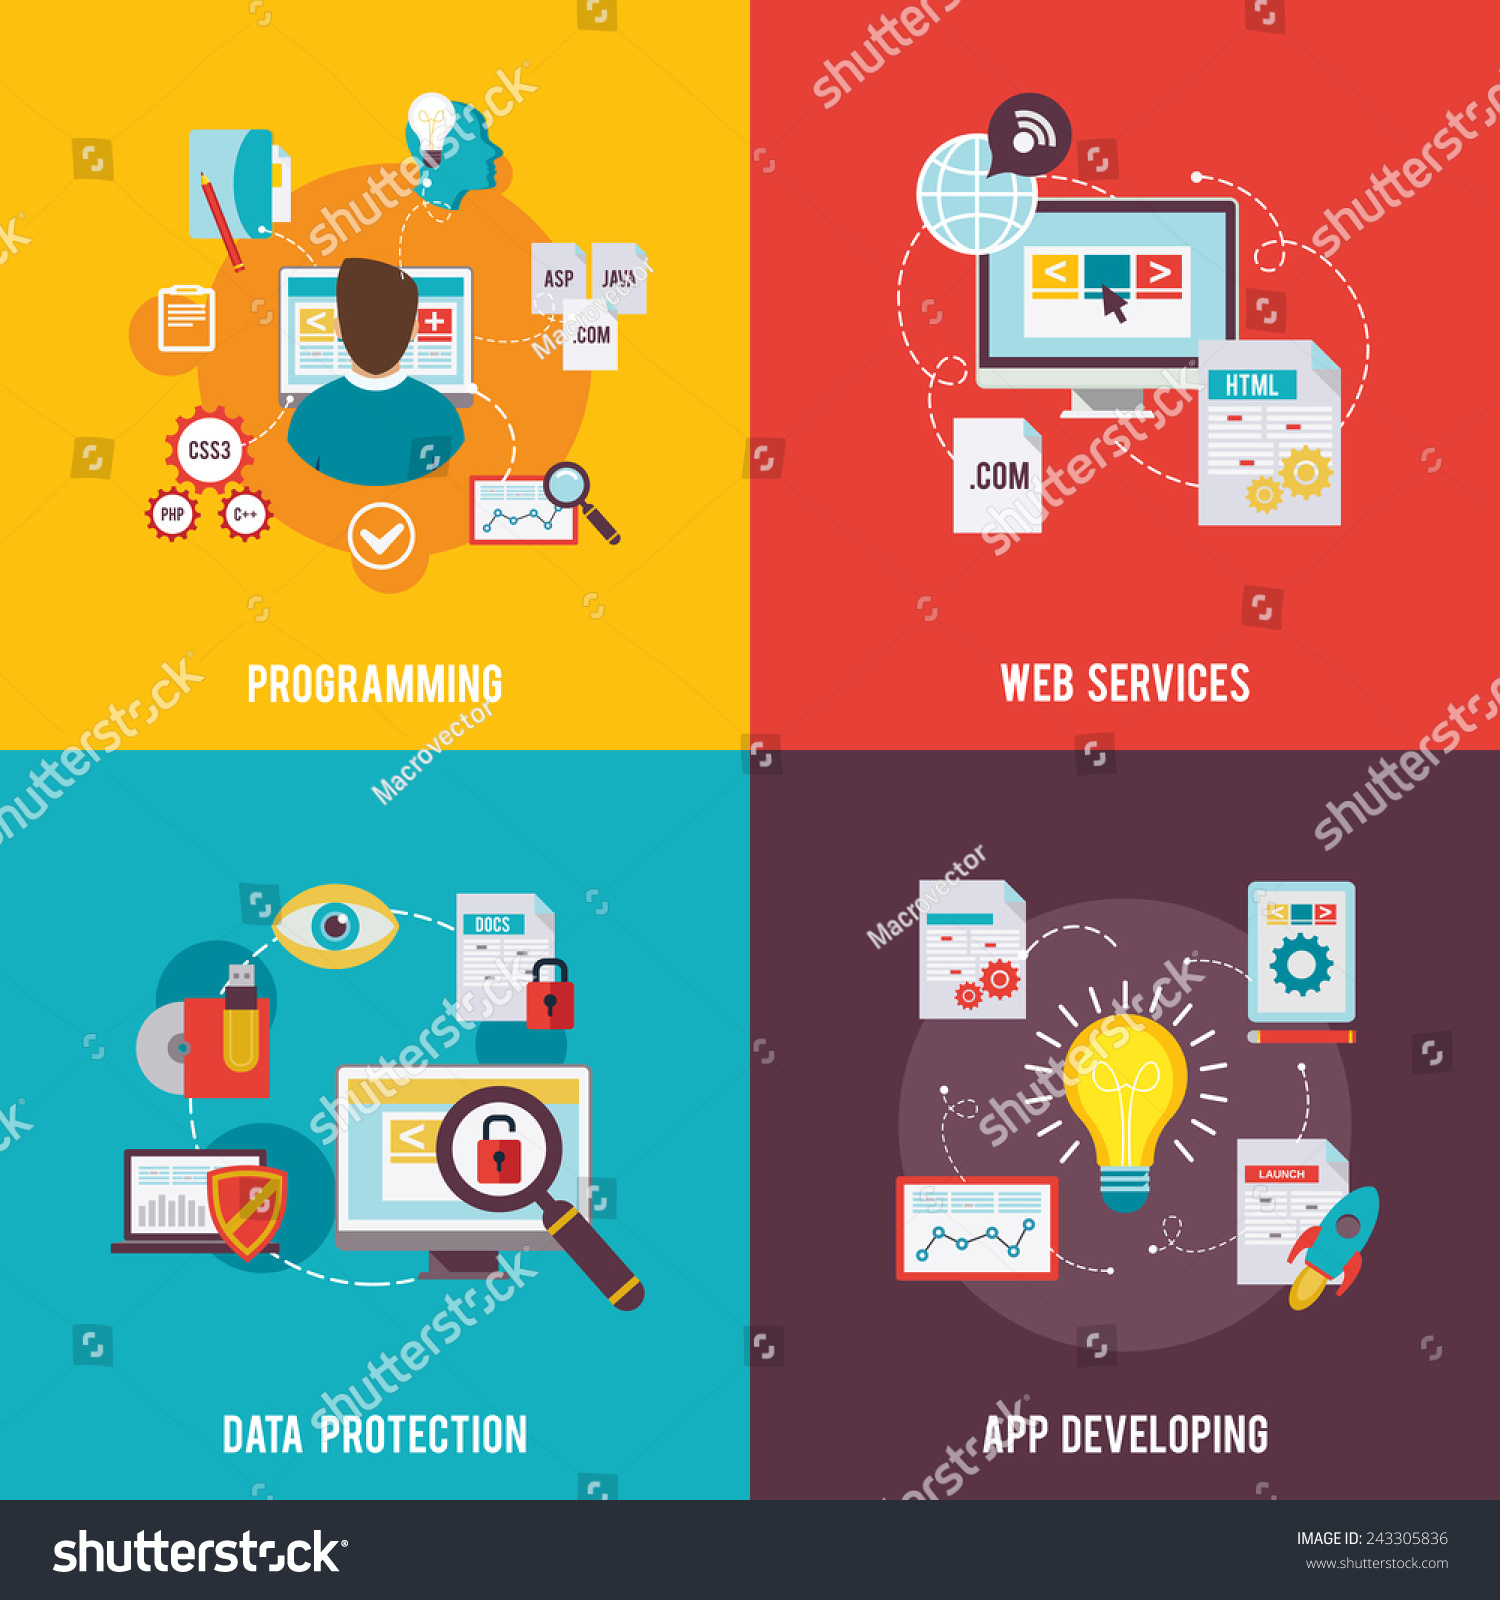 Data Protection Services : Programmer icon flat set web services stock vector